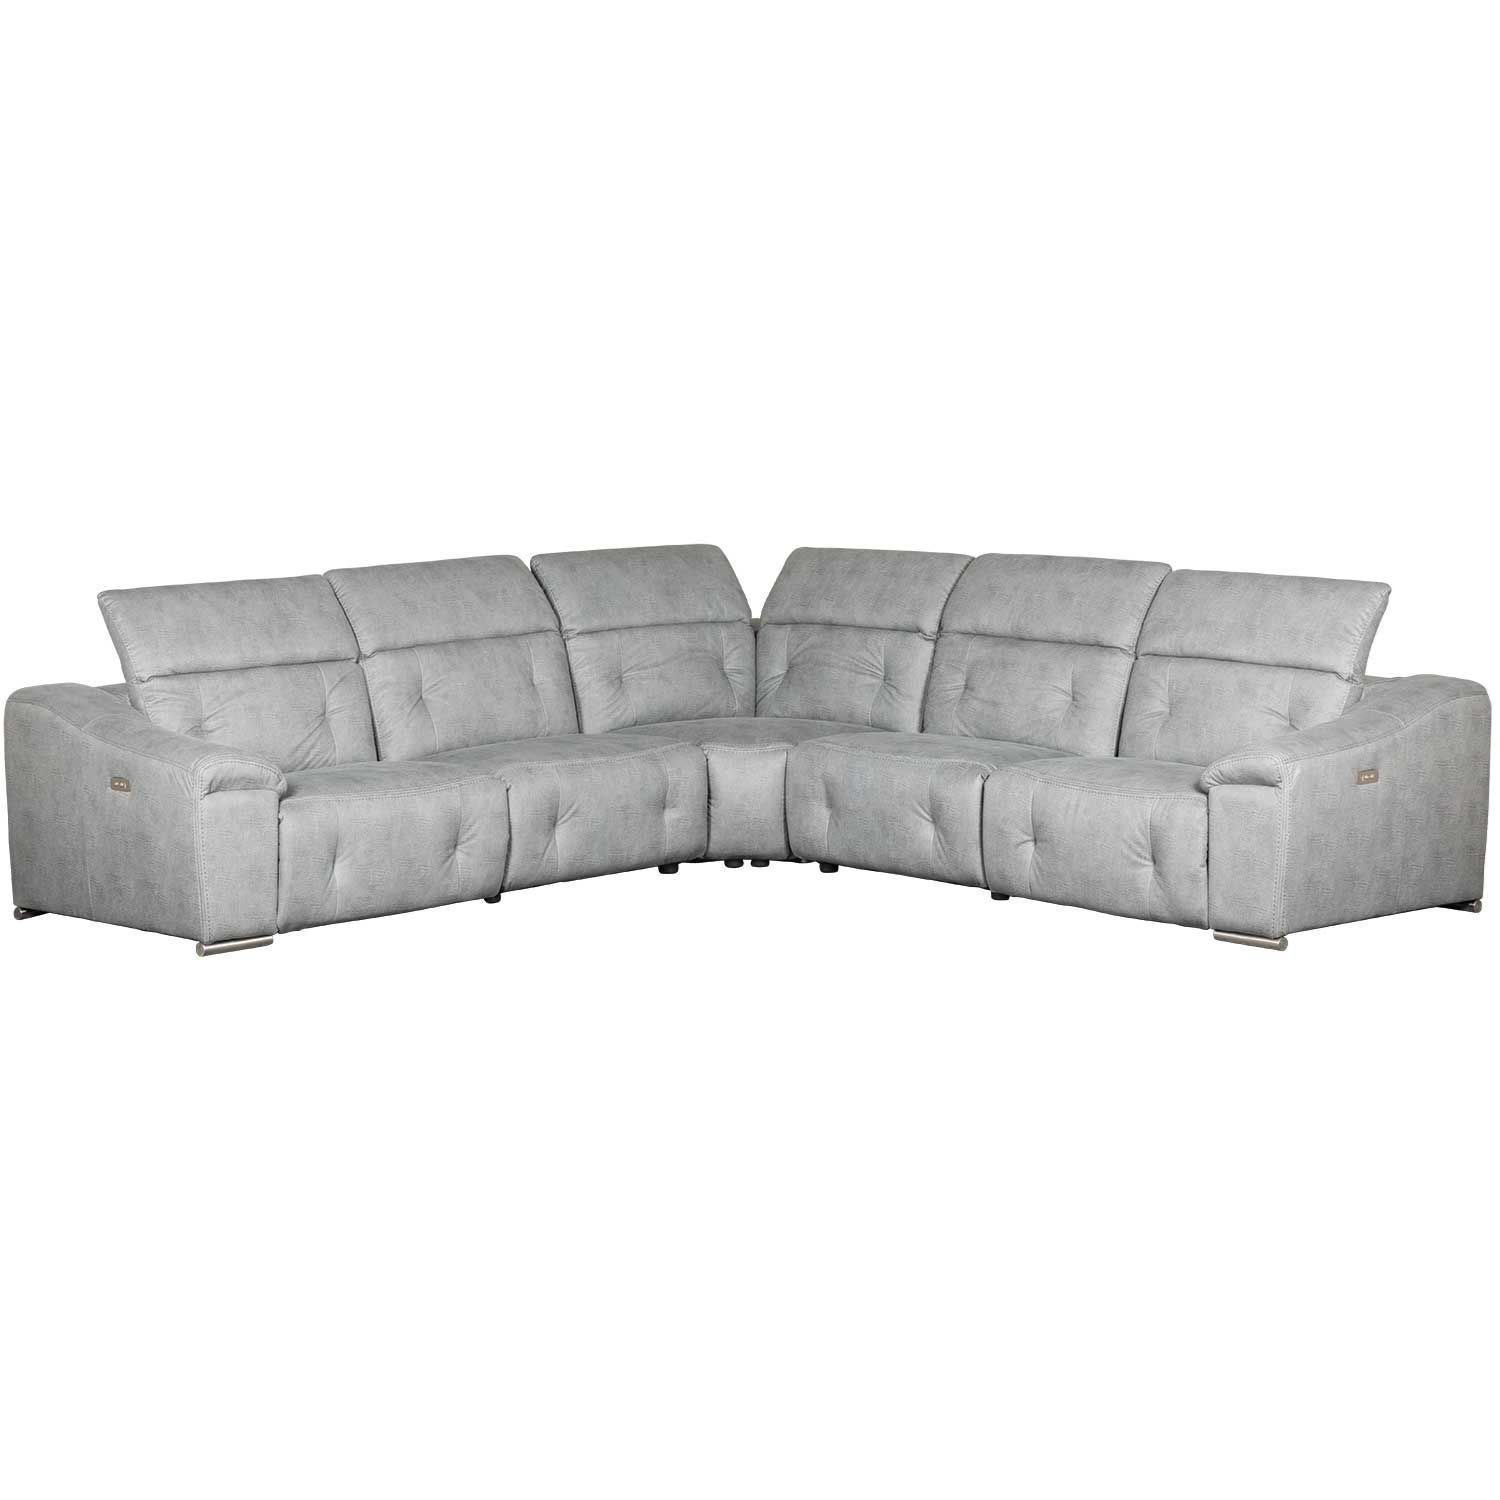 Picture of Bronx 5 Piece Power Reclining Sectional